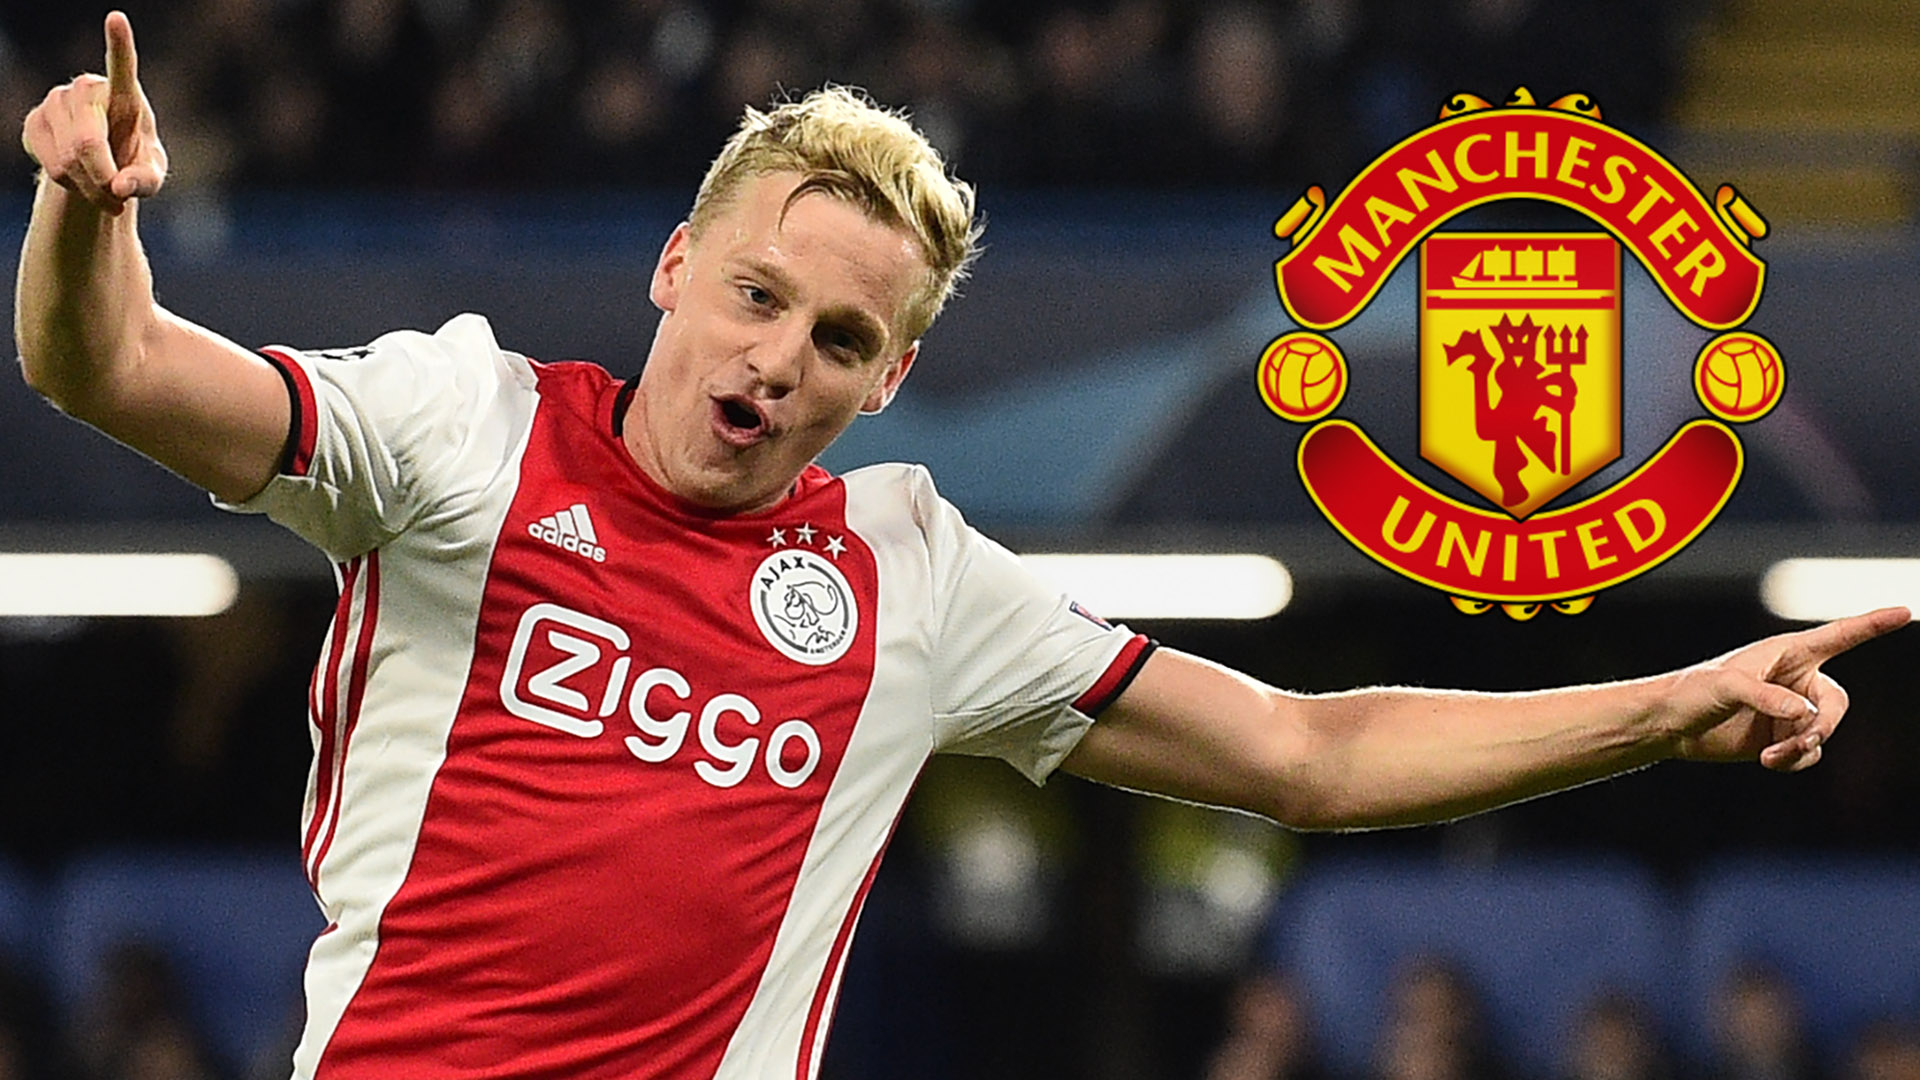 Van De Beek Will Work Really Well At Man Utd Ajax Star Will Be A Fantastic Addition To Solskjaer S Ranks Says Bosnich Goal Com